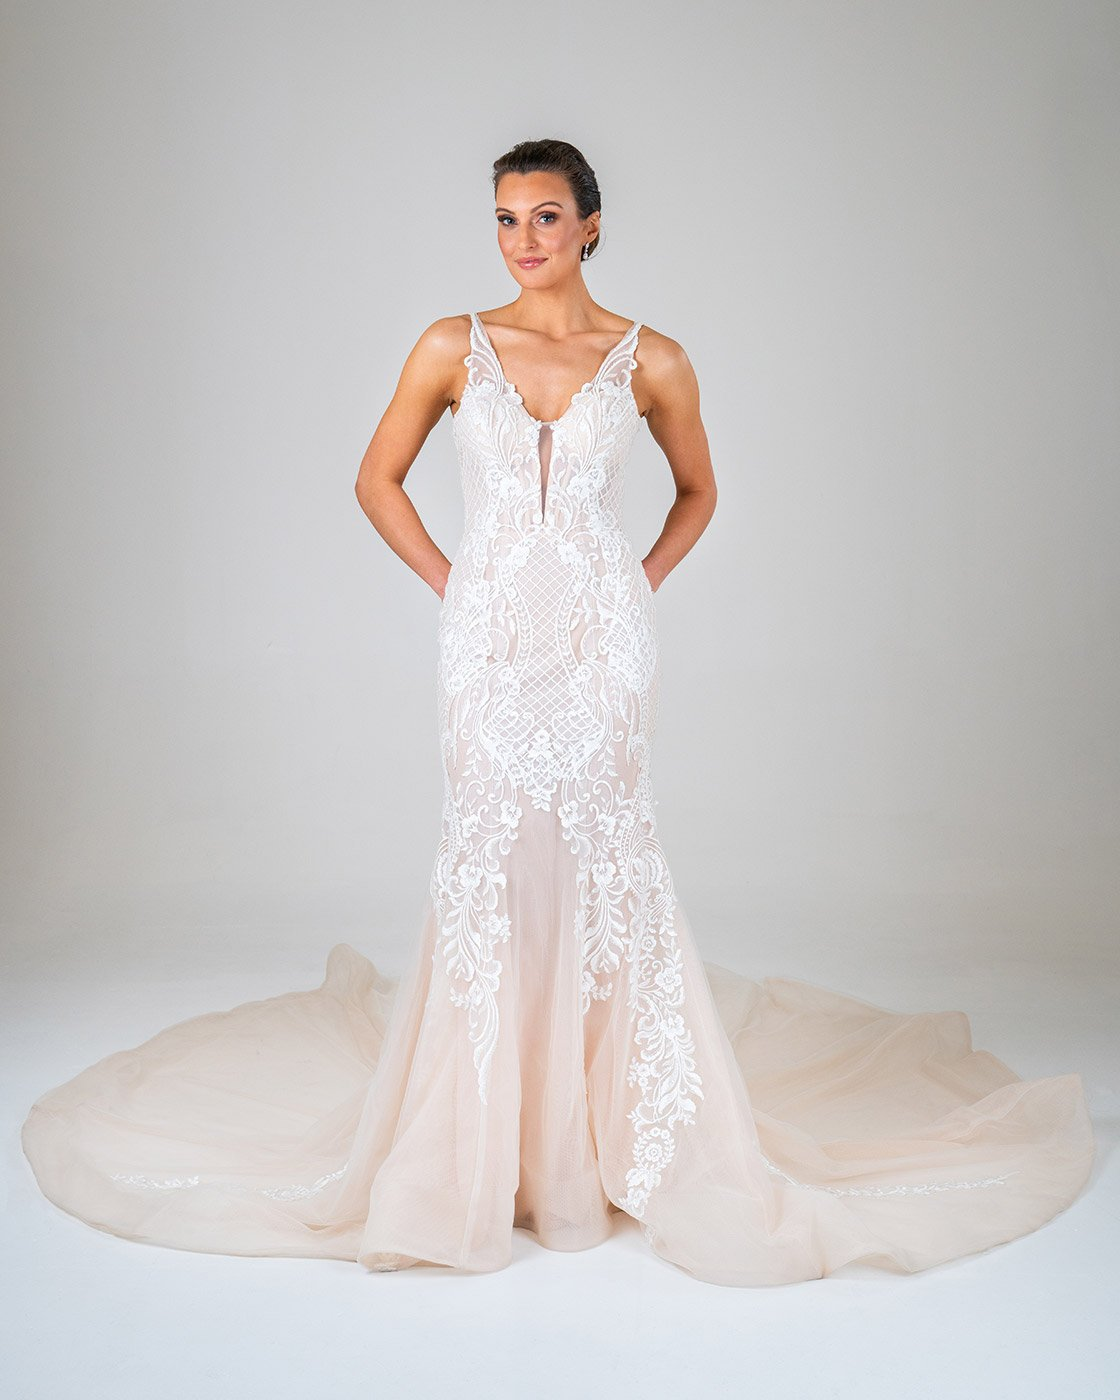 Kimberely wedding dress front